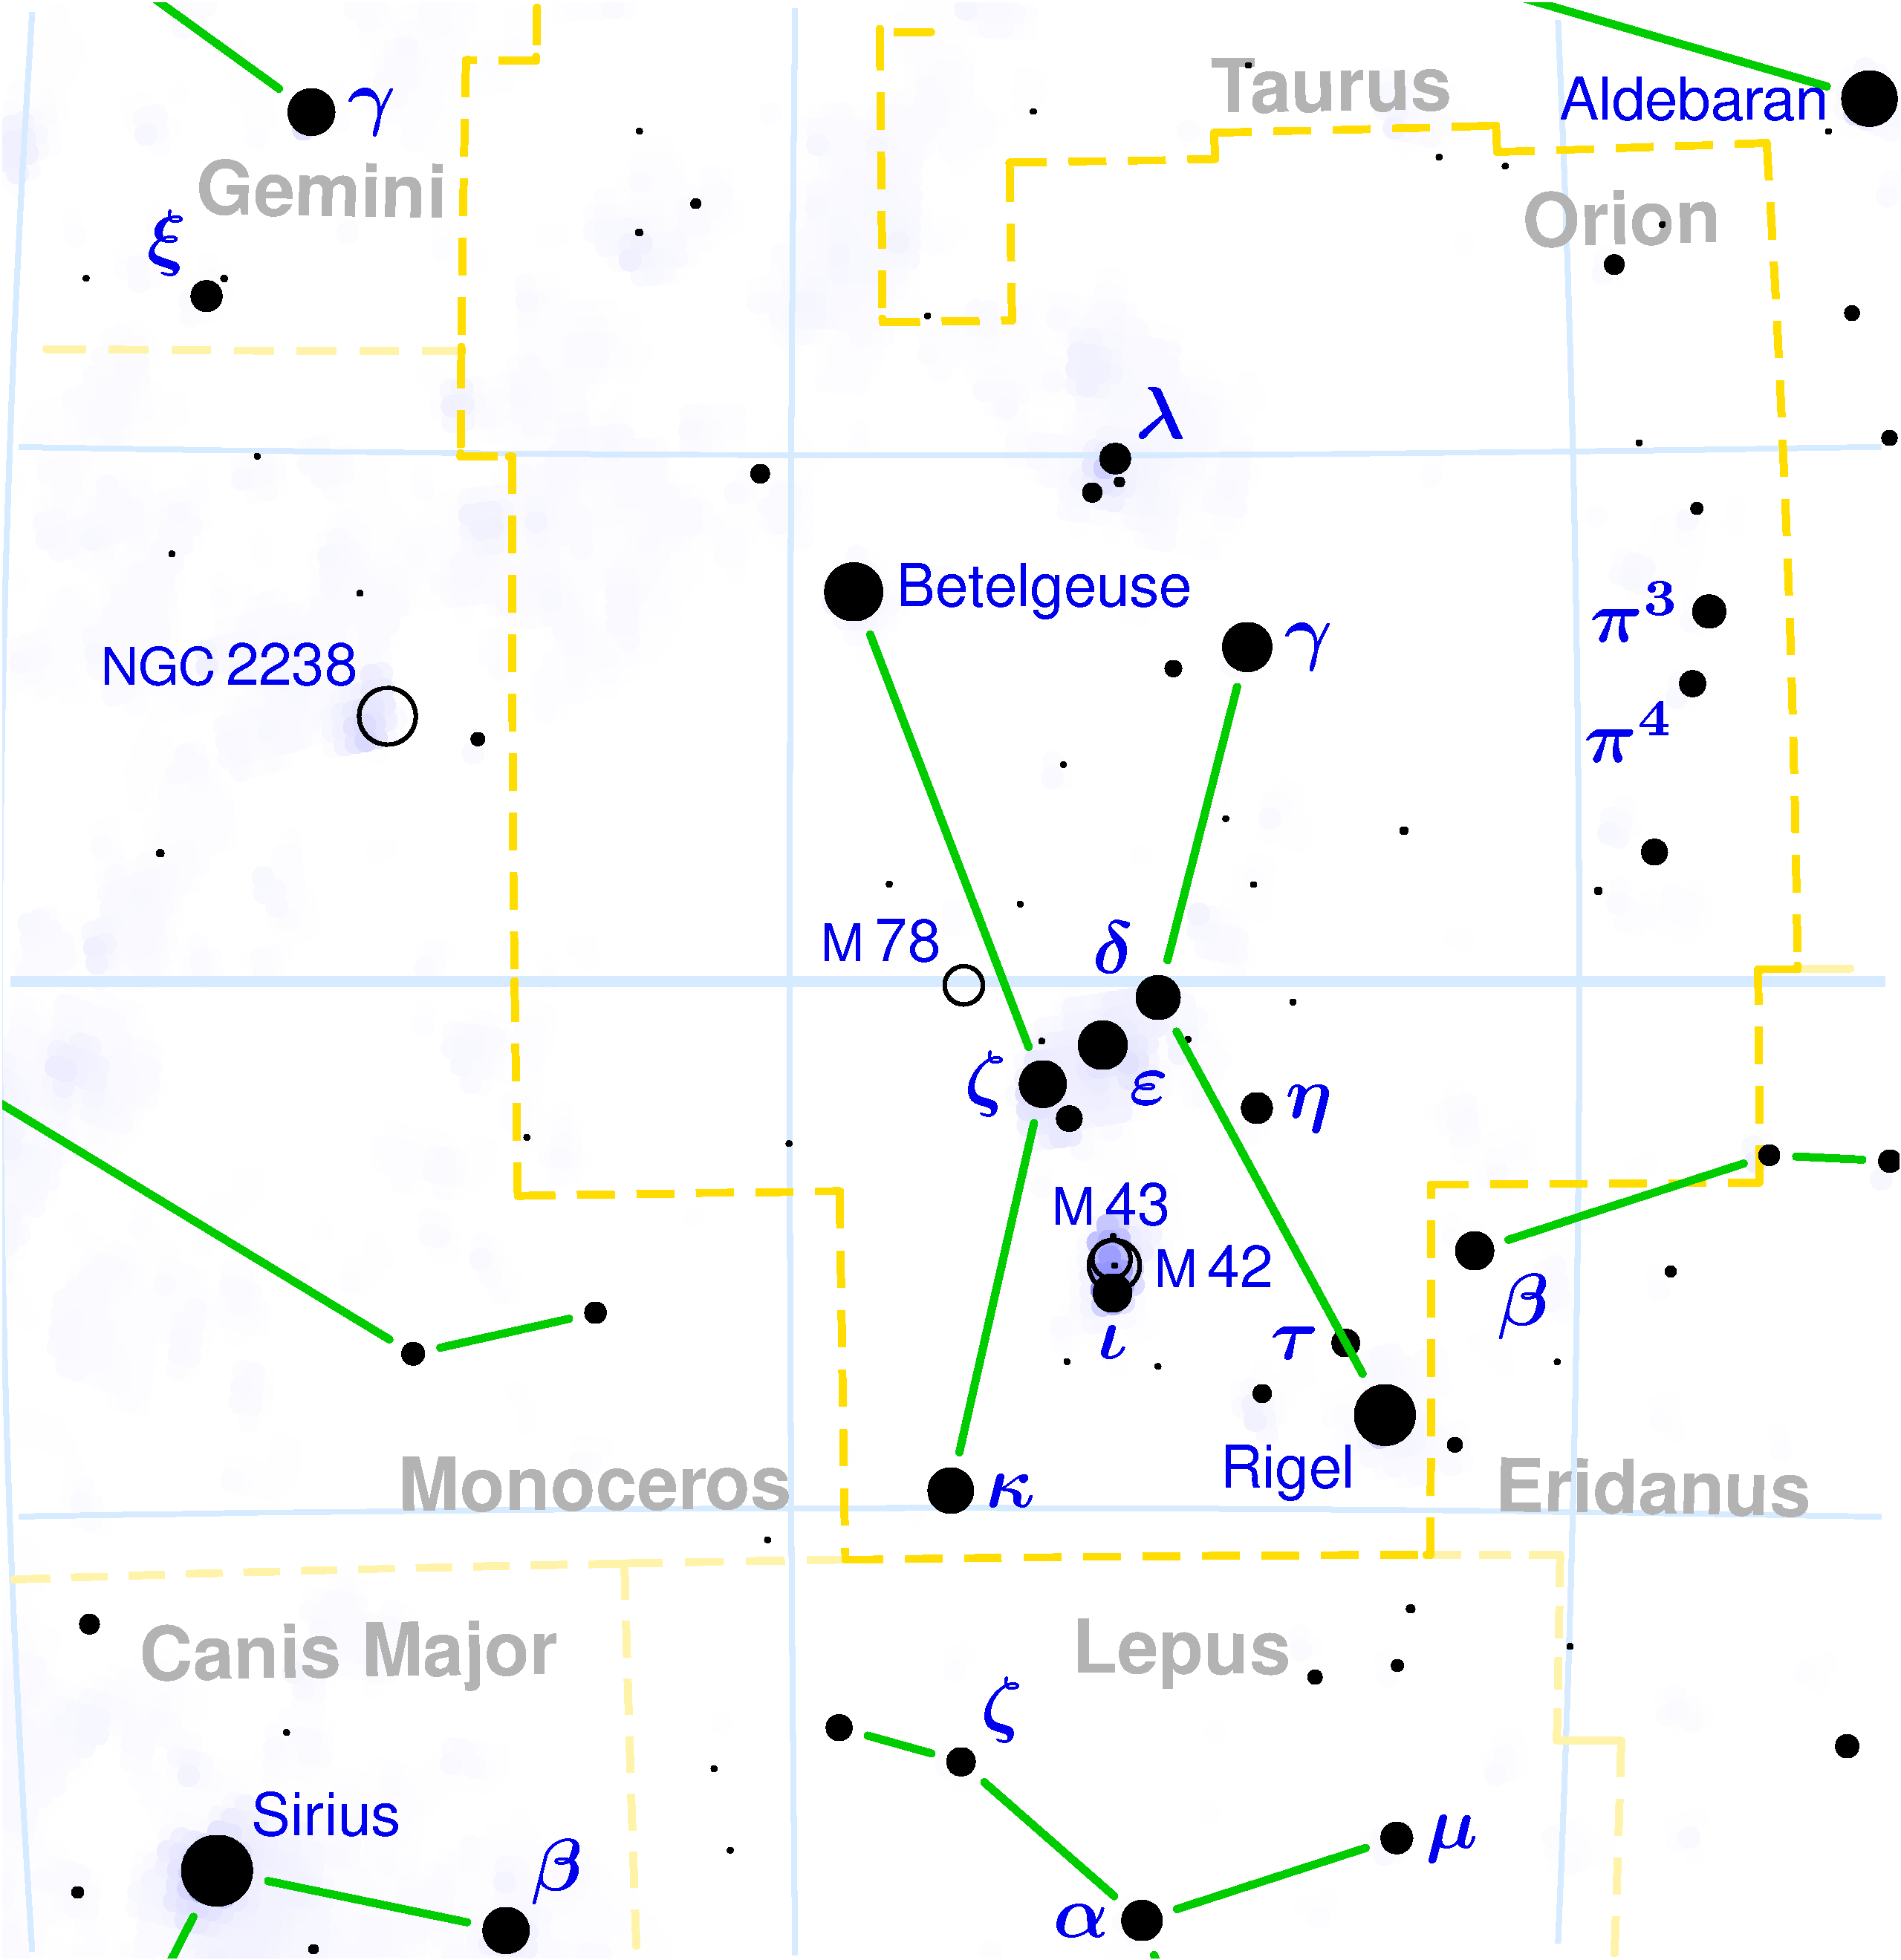 File:Orion constellation map.png - Wikipedia, the free encyclopedia